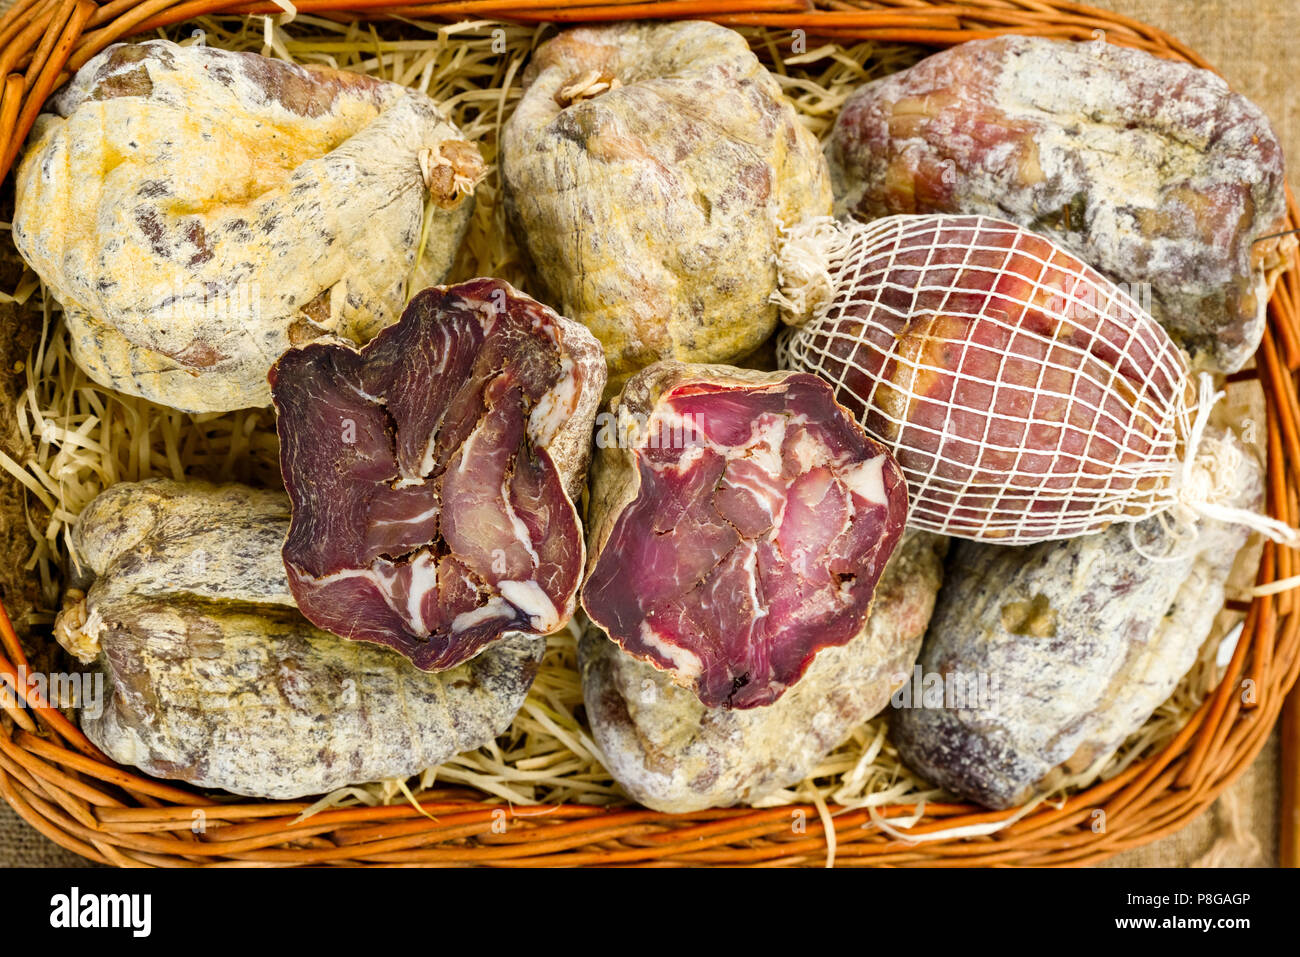 Raw smoked meat in a wicker net - Stock Image